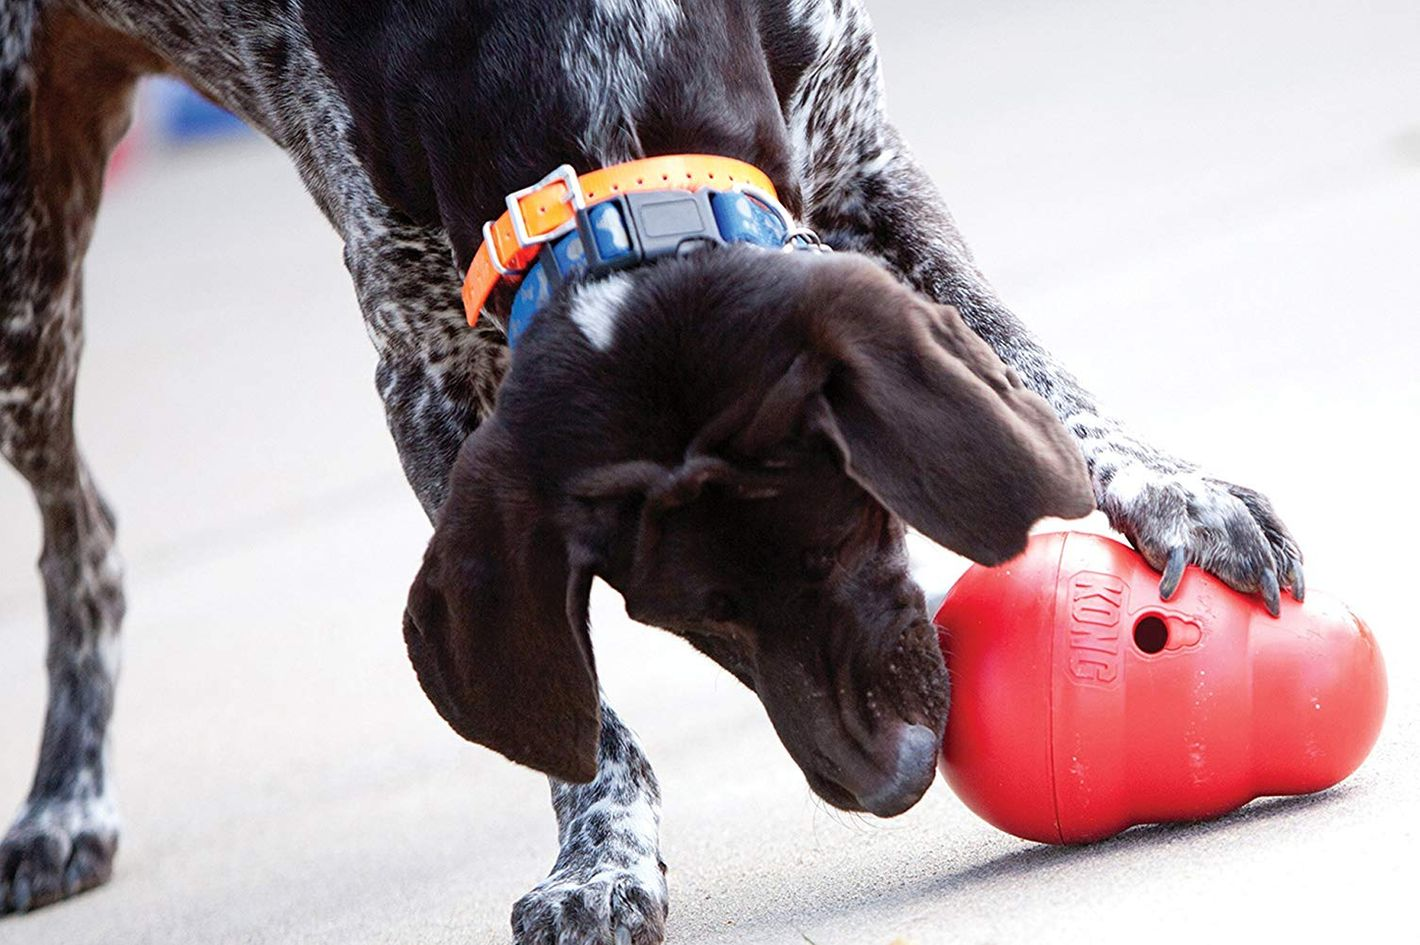 KONG Wobbler Interactive Treat-Dispensing Dog Toy